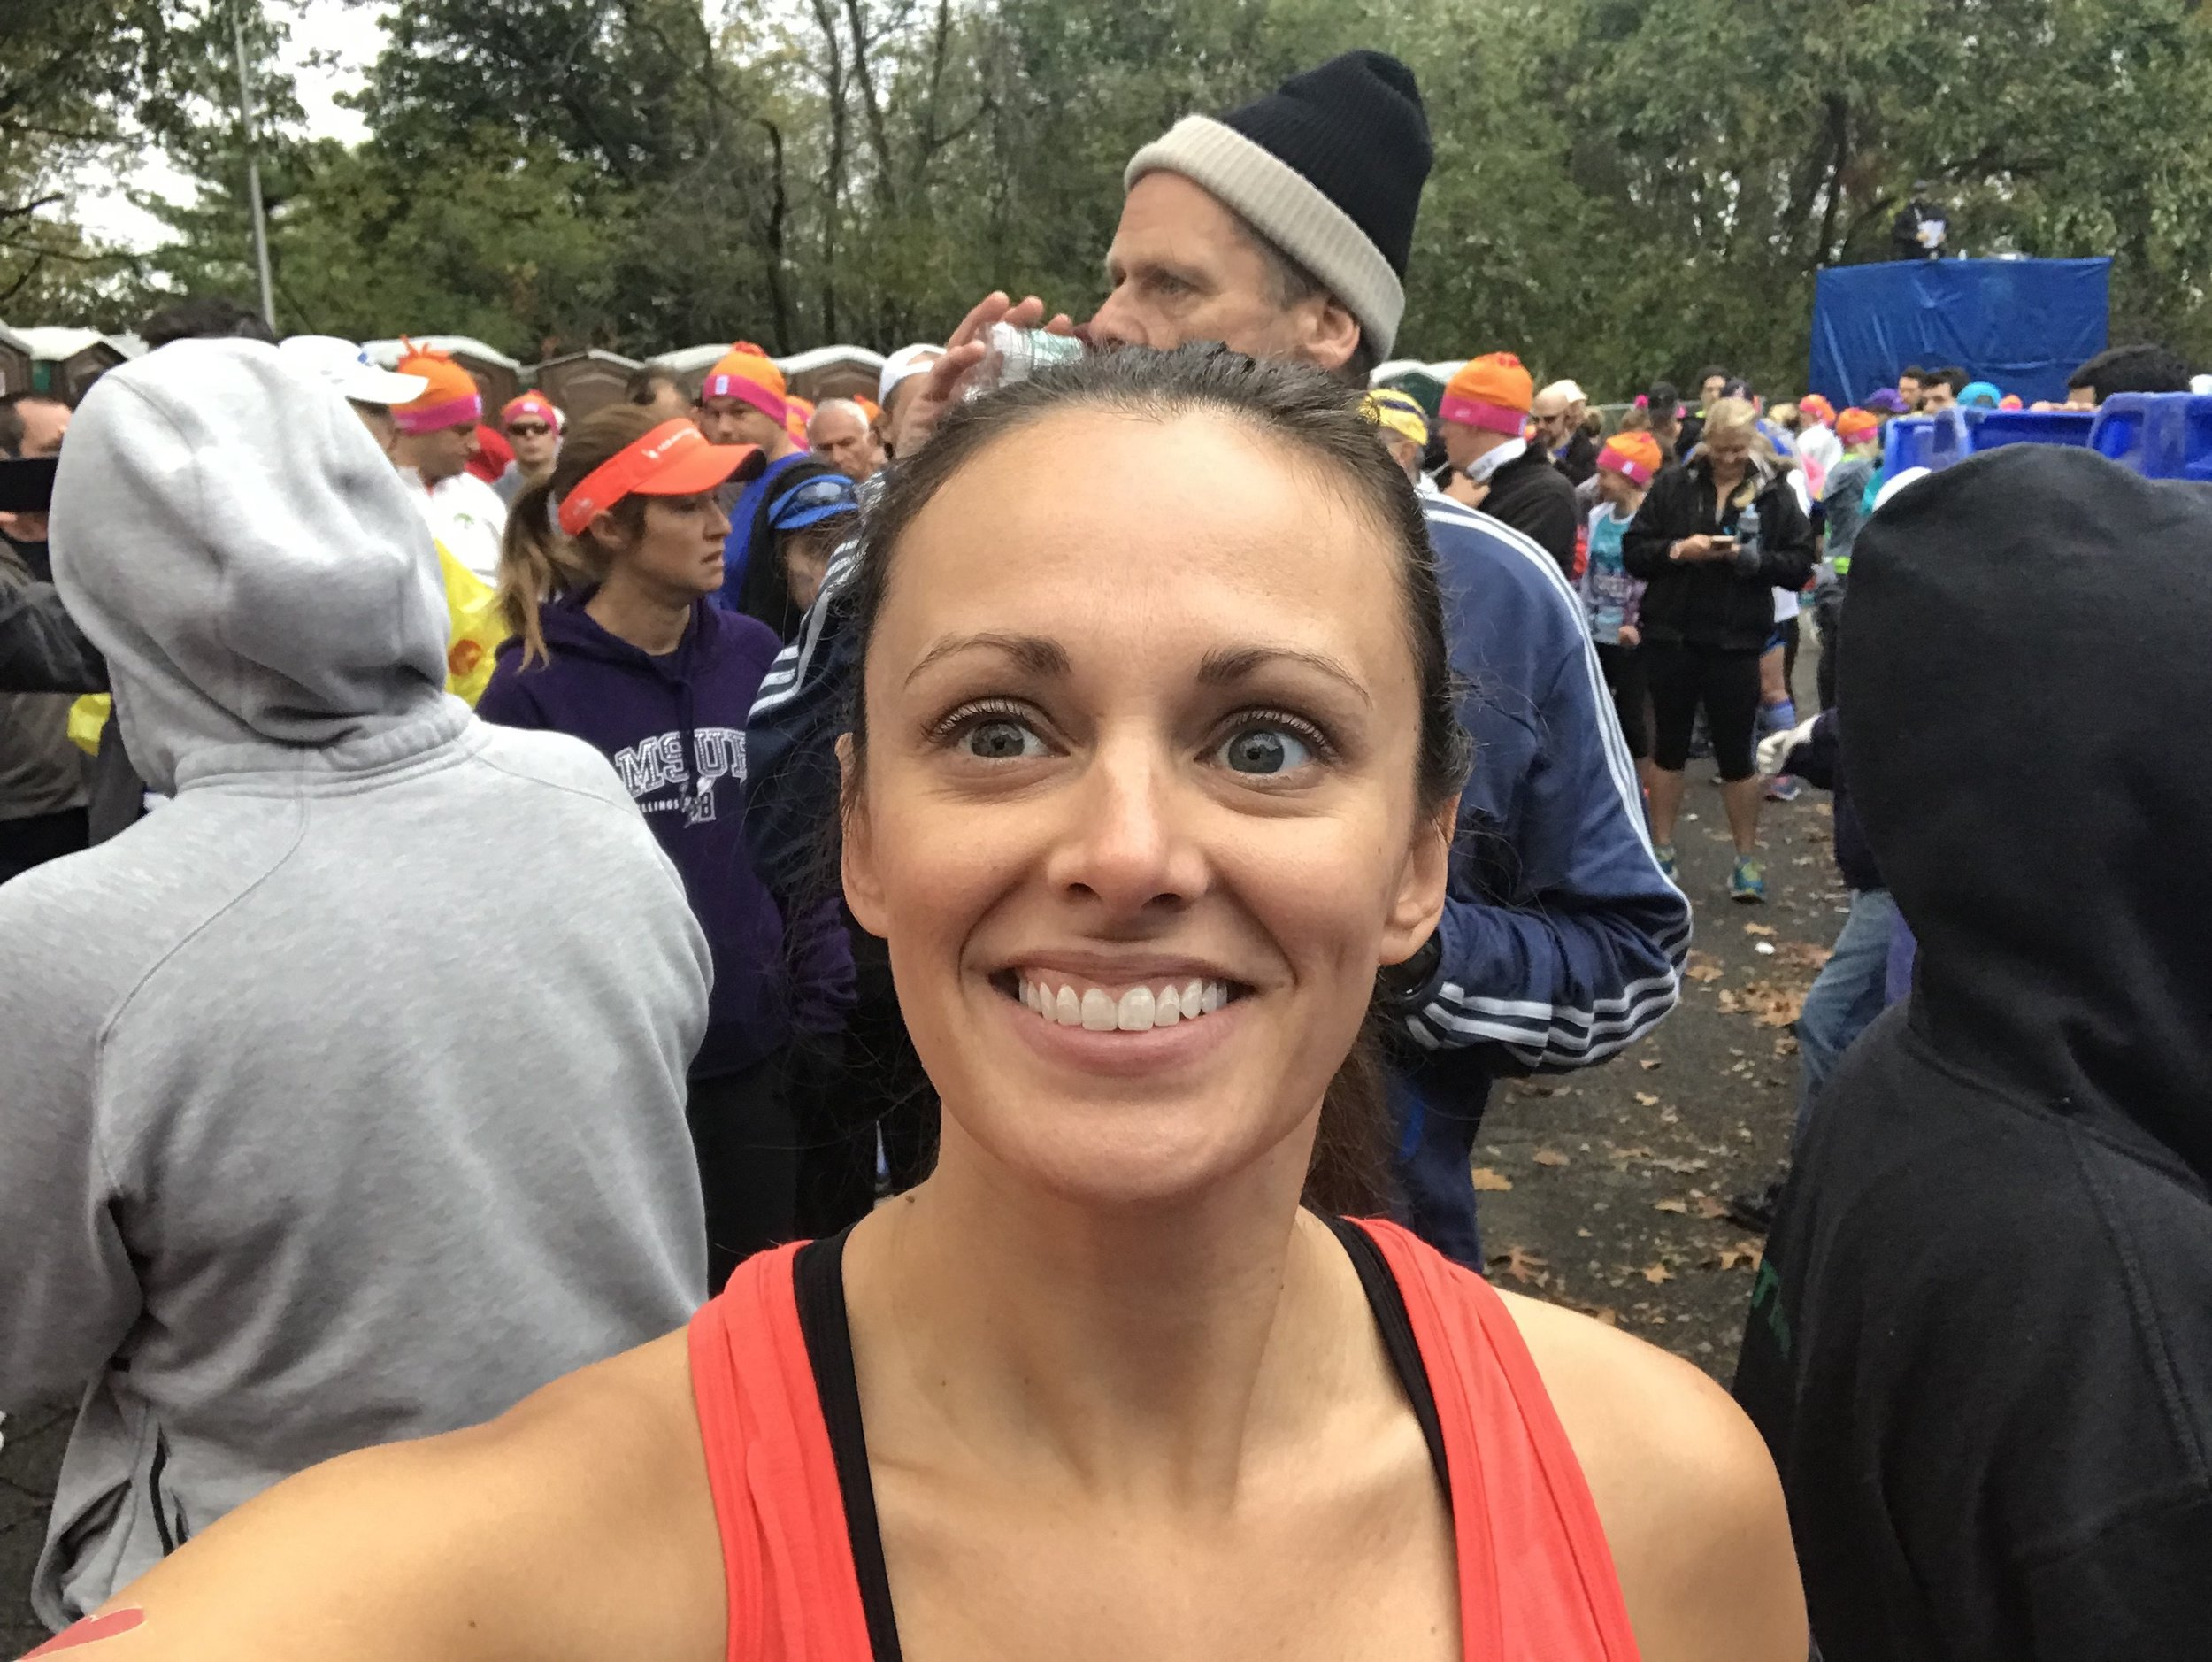 Meghan at the NYC Marathon